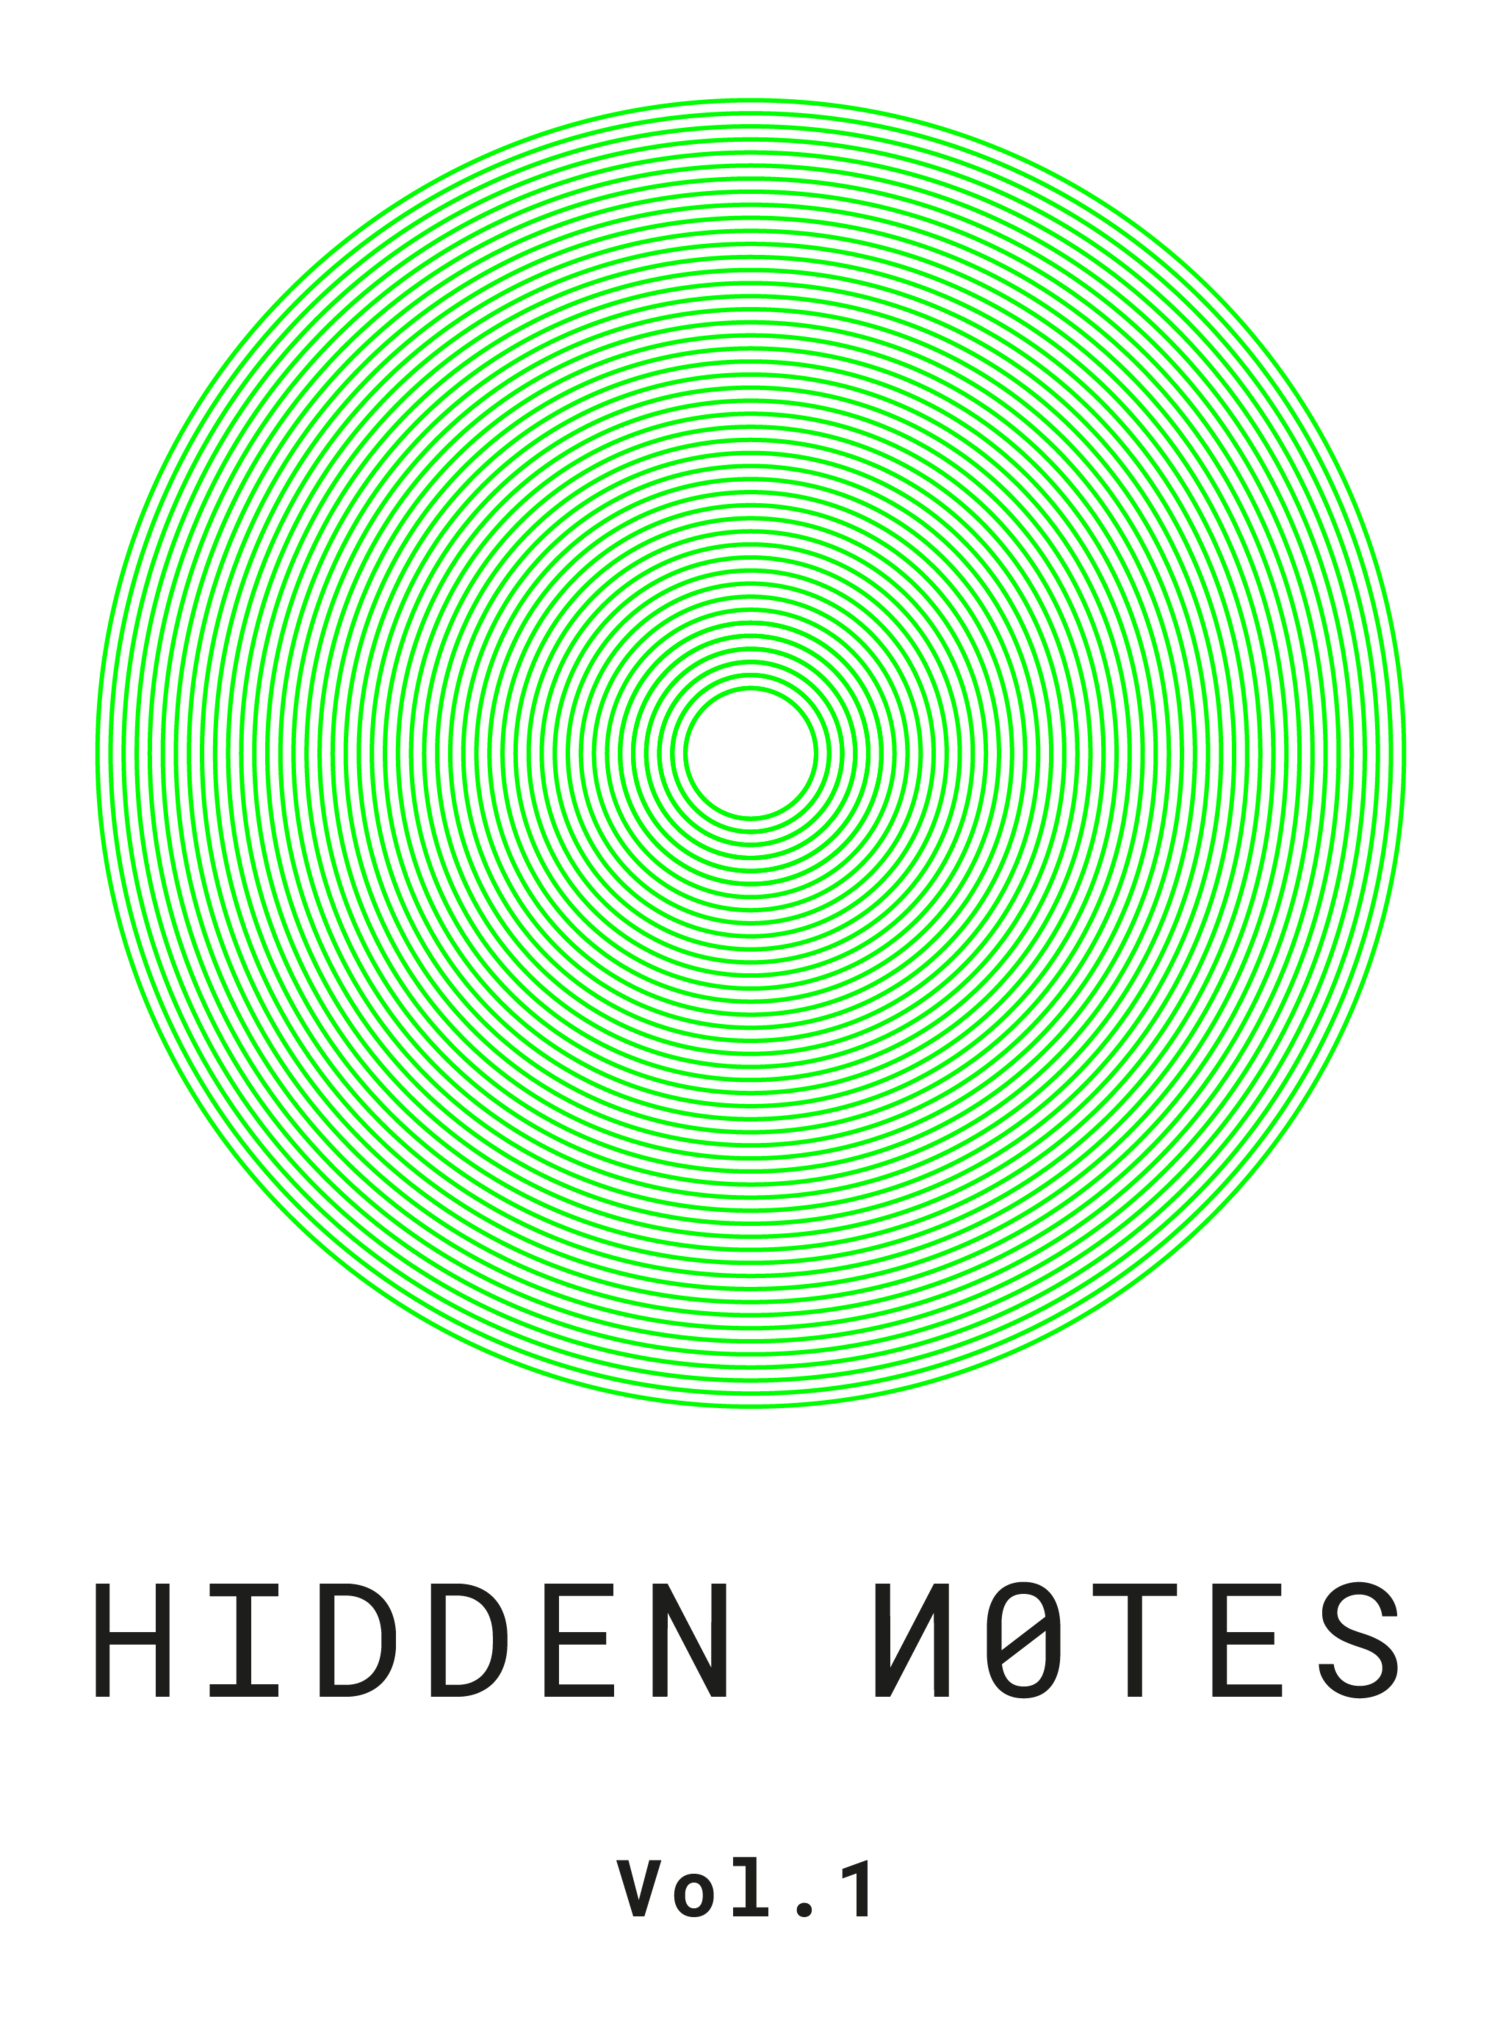 Hidden Notes